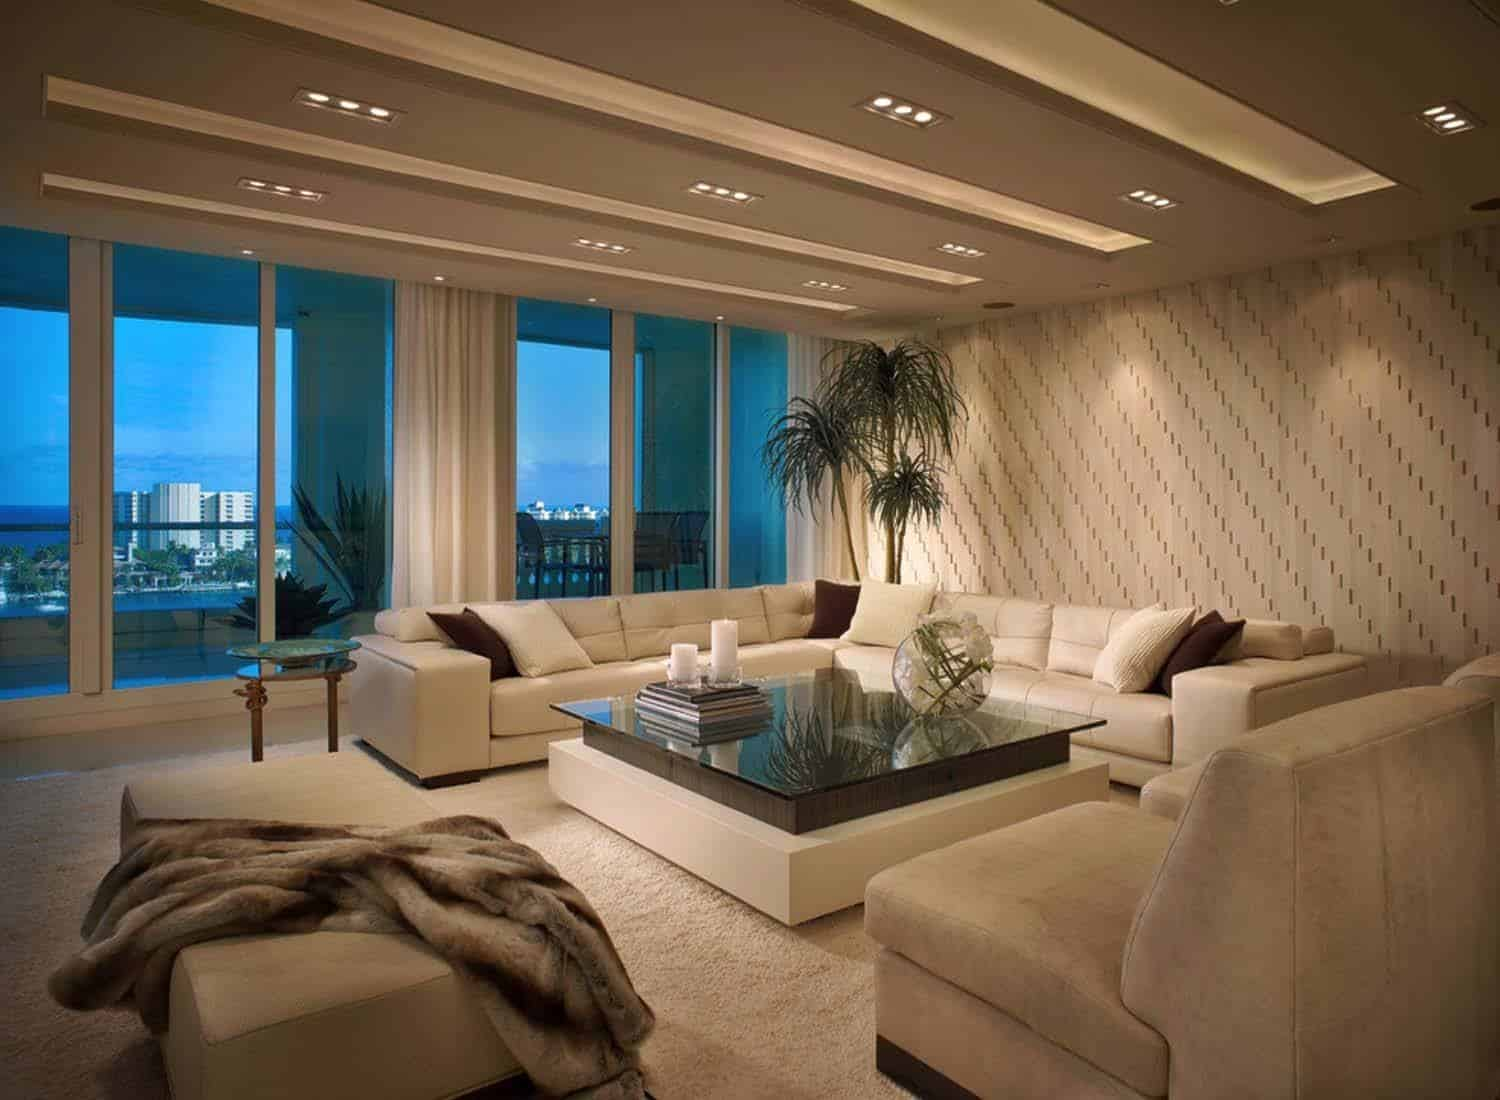 Impeccable Design Details In Luxurious Boca Raton Residence